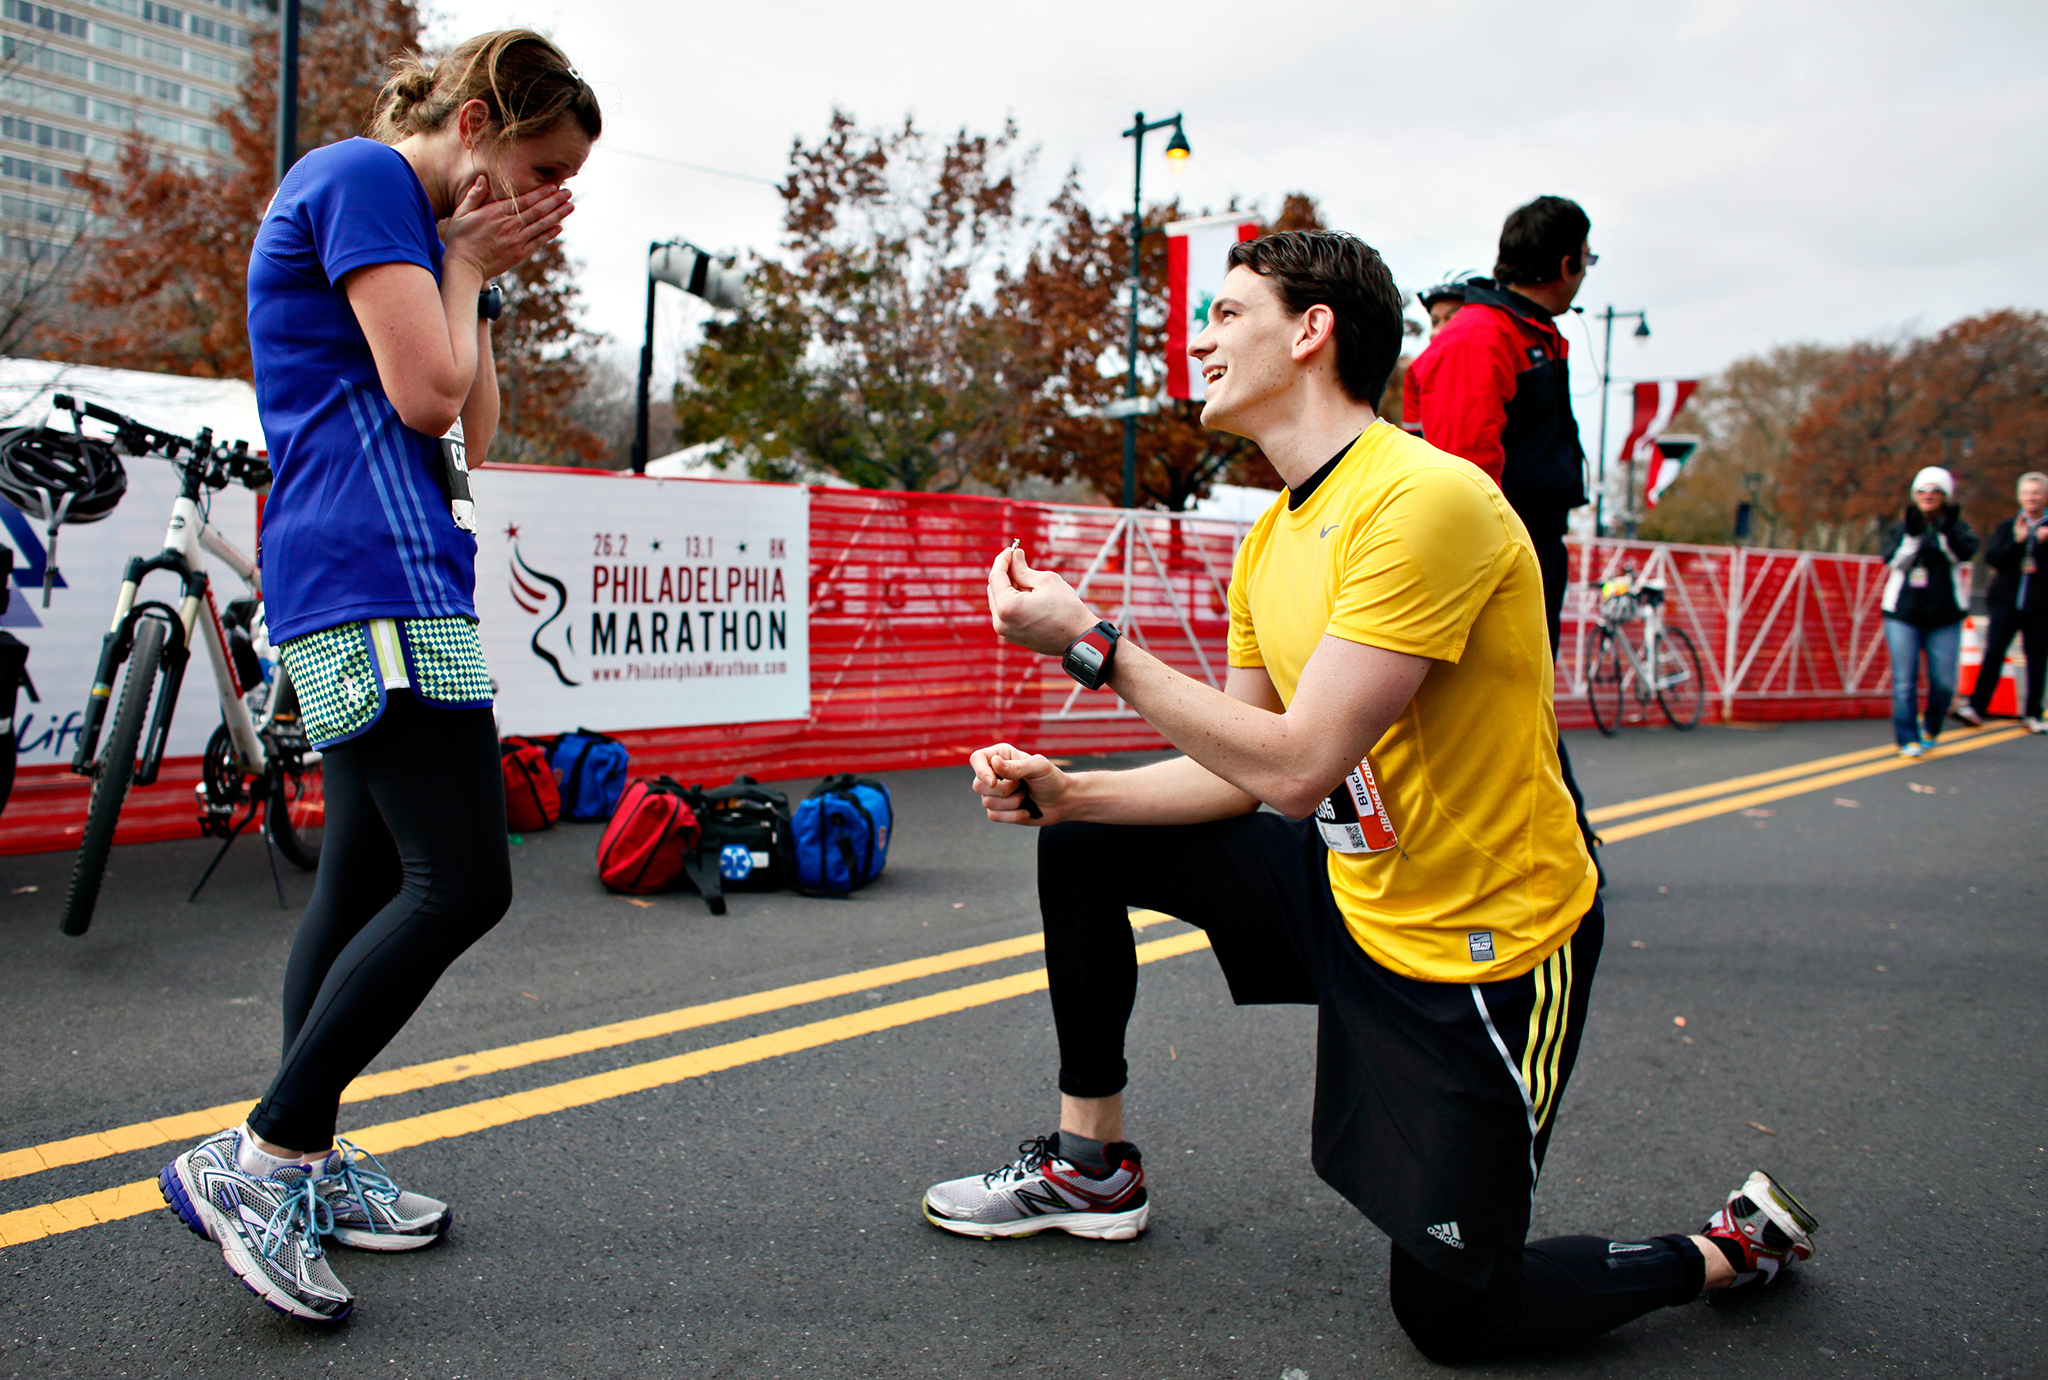 You know what they say: The couple that runs 26.2 miles together stays together. Or at least that's probably what Vince Speenburgh was thinking when he asked Carolyn Sollecito to marry him just before the finish line at the 2012 Philadelphia Marathon.